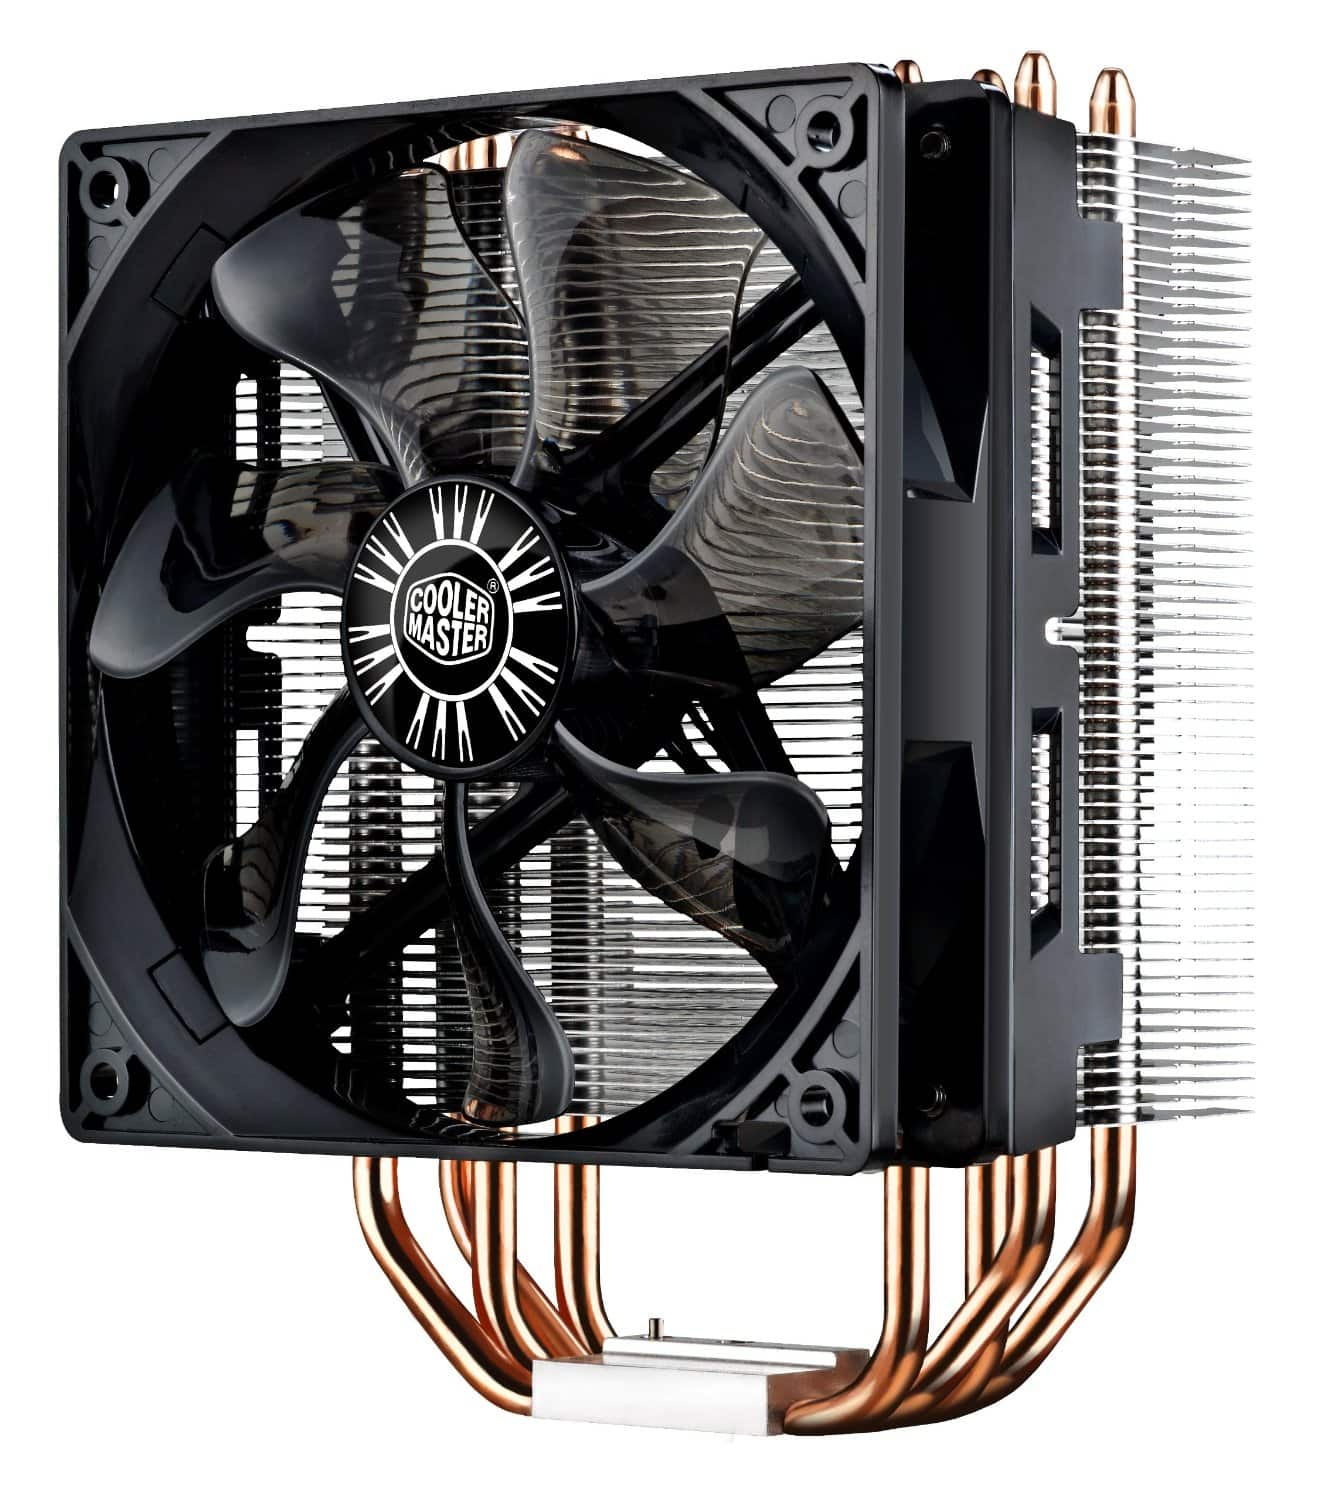 Cooler Master Hyper 212 EVO CPU Cooler with 120mm PWM Fan for $19.99 AR +  Free Shipping @ Newegg.com